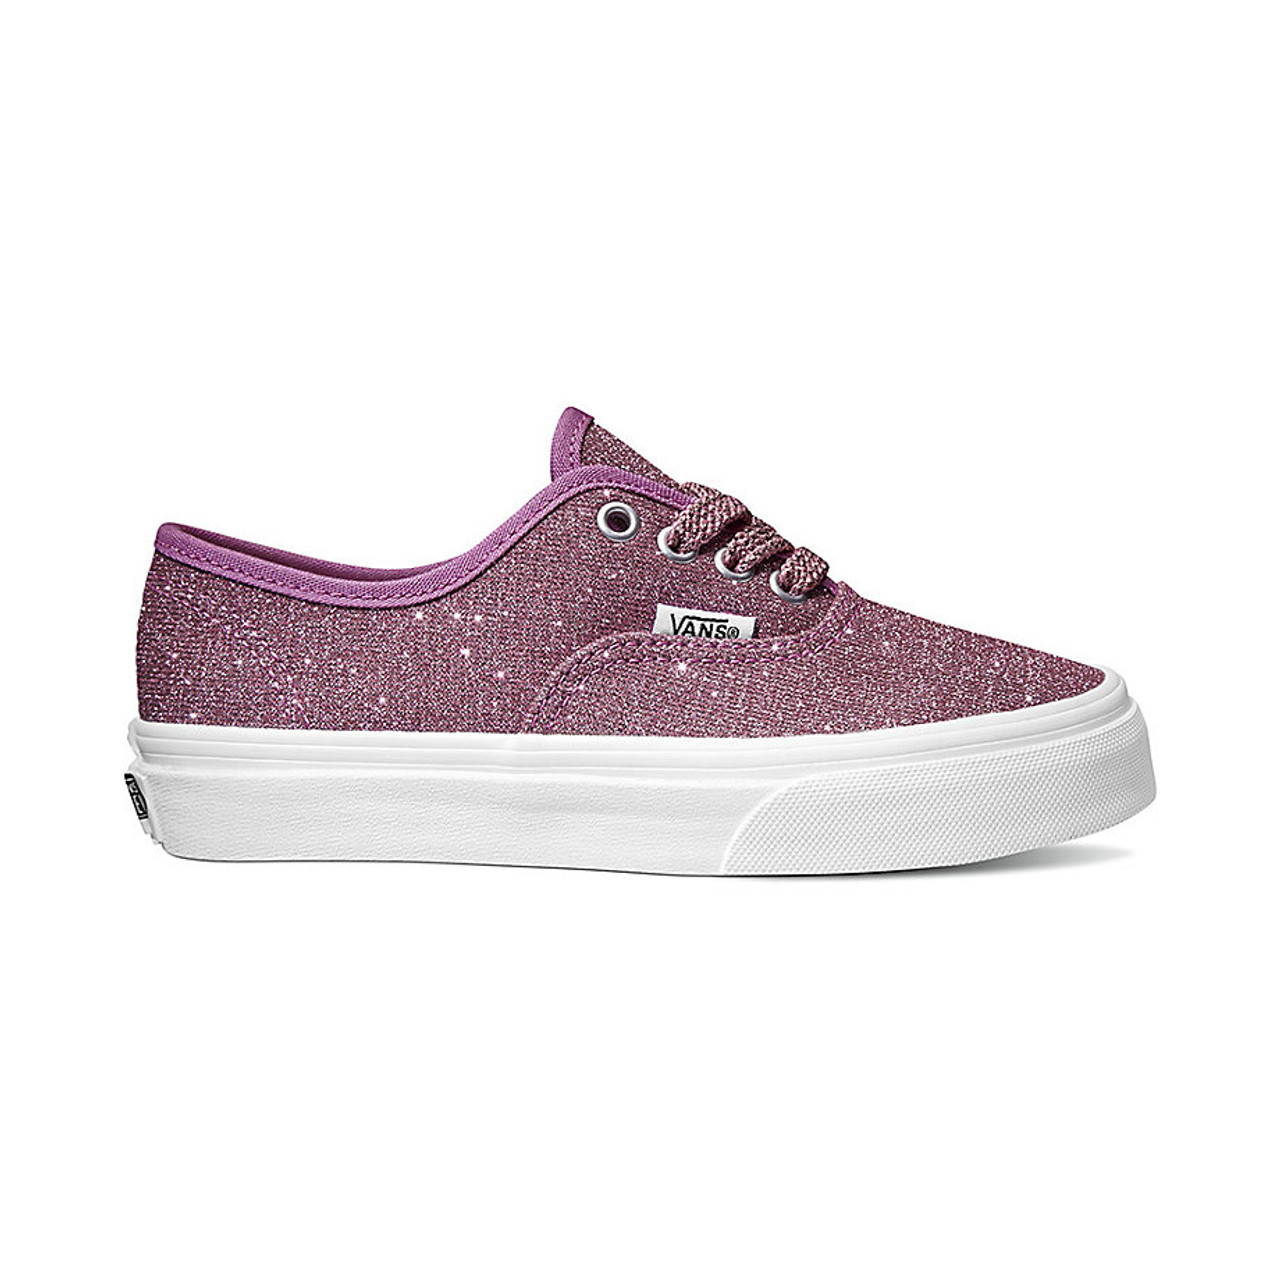 280432d87f20 Vans Youth Shoes - Authentic - Lurex Glitter/Pink/True White - Surf ...